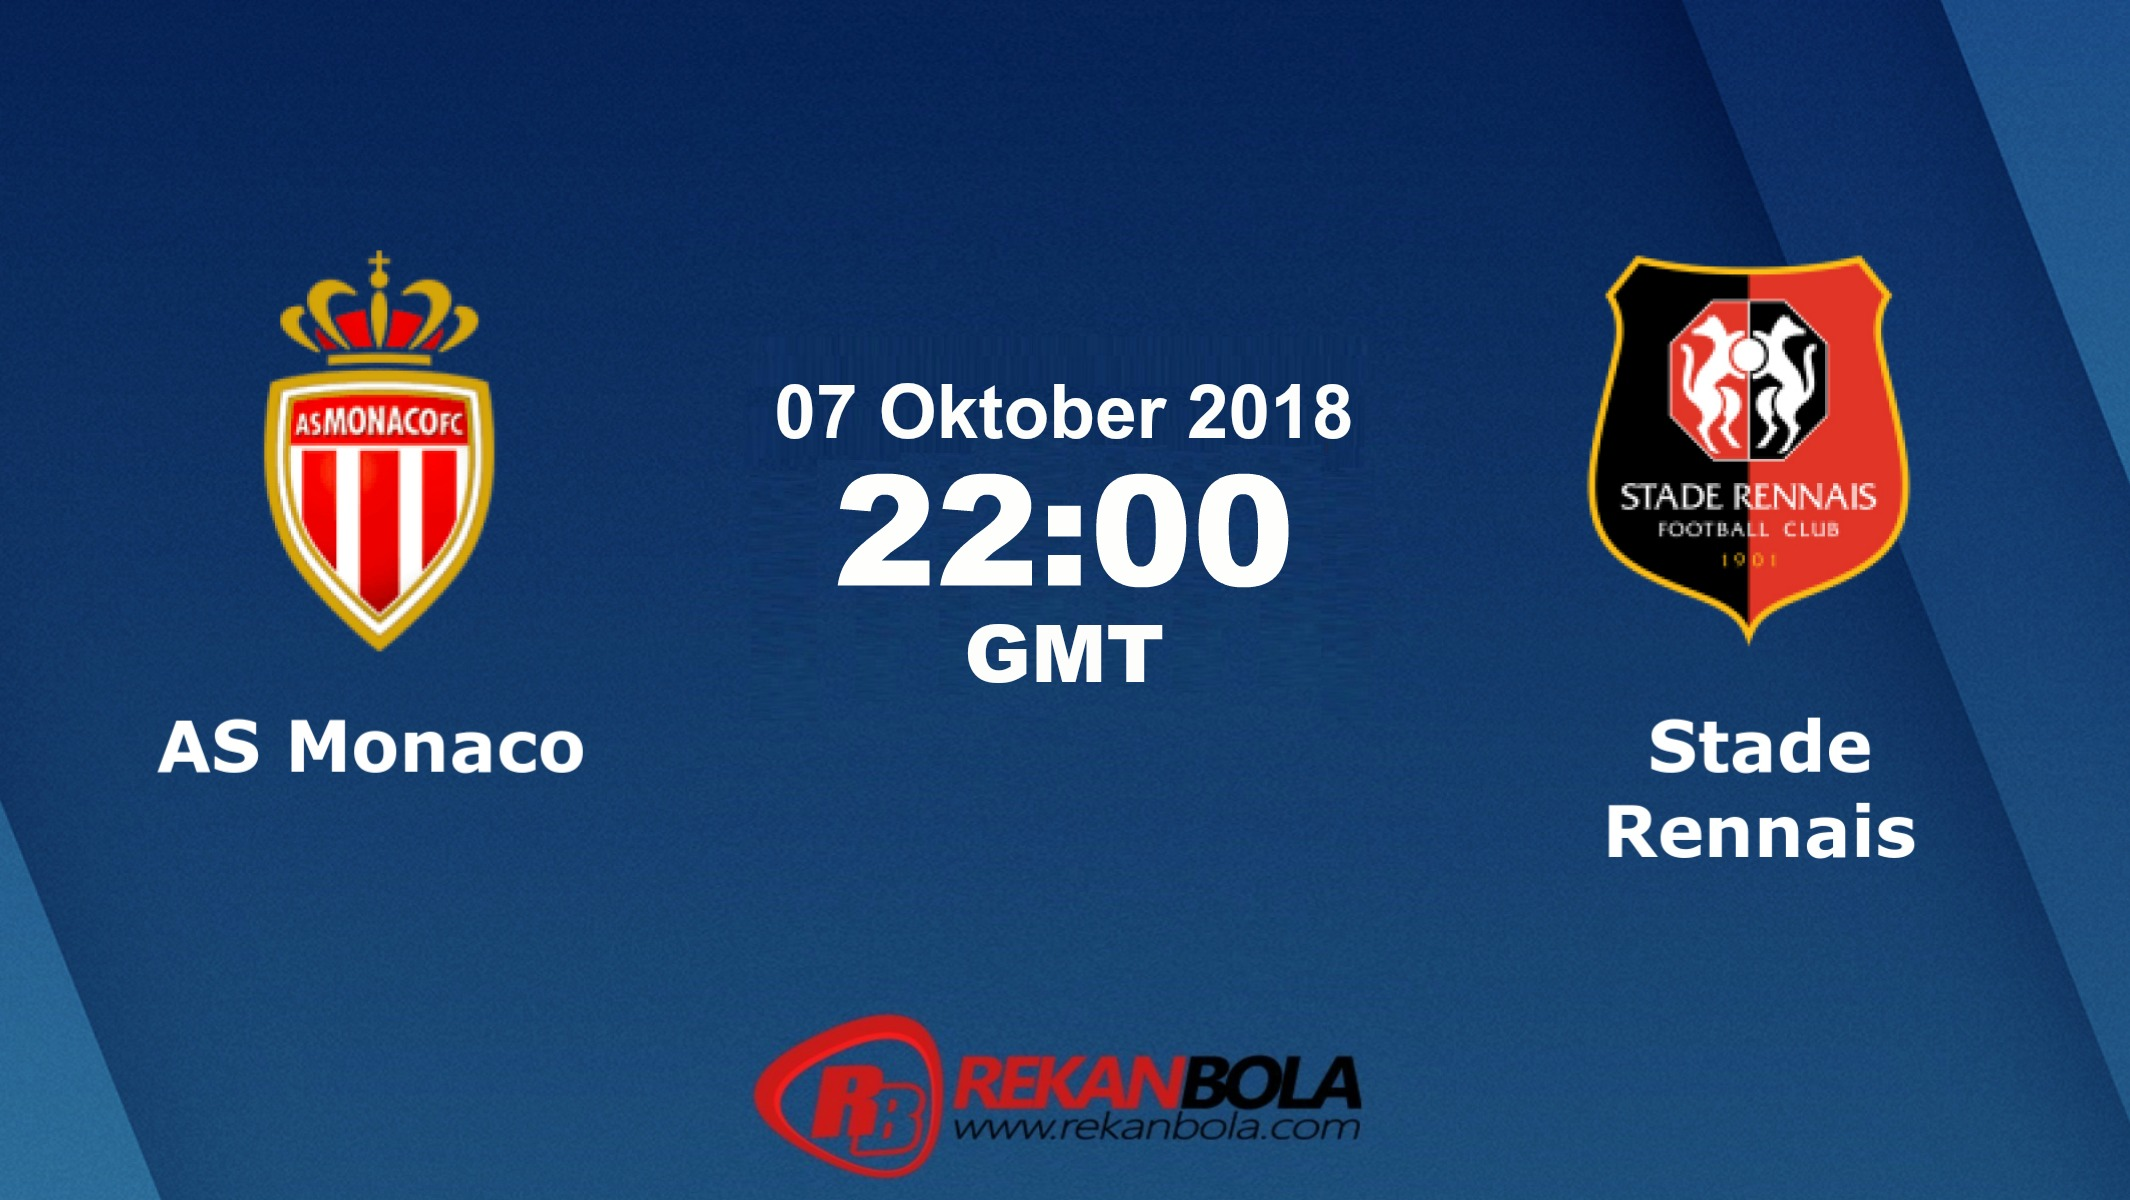 Nonton Siaran Live Streaming AS Monaco Vs Rennes 07 Oktober 2018